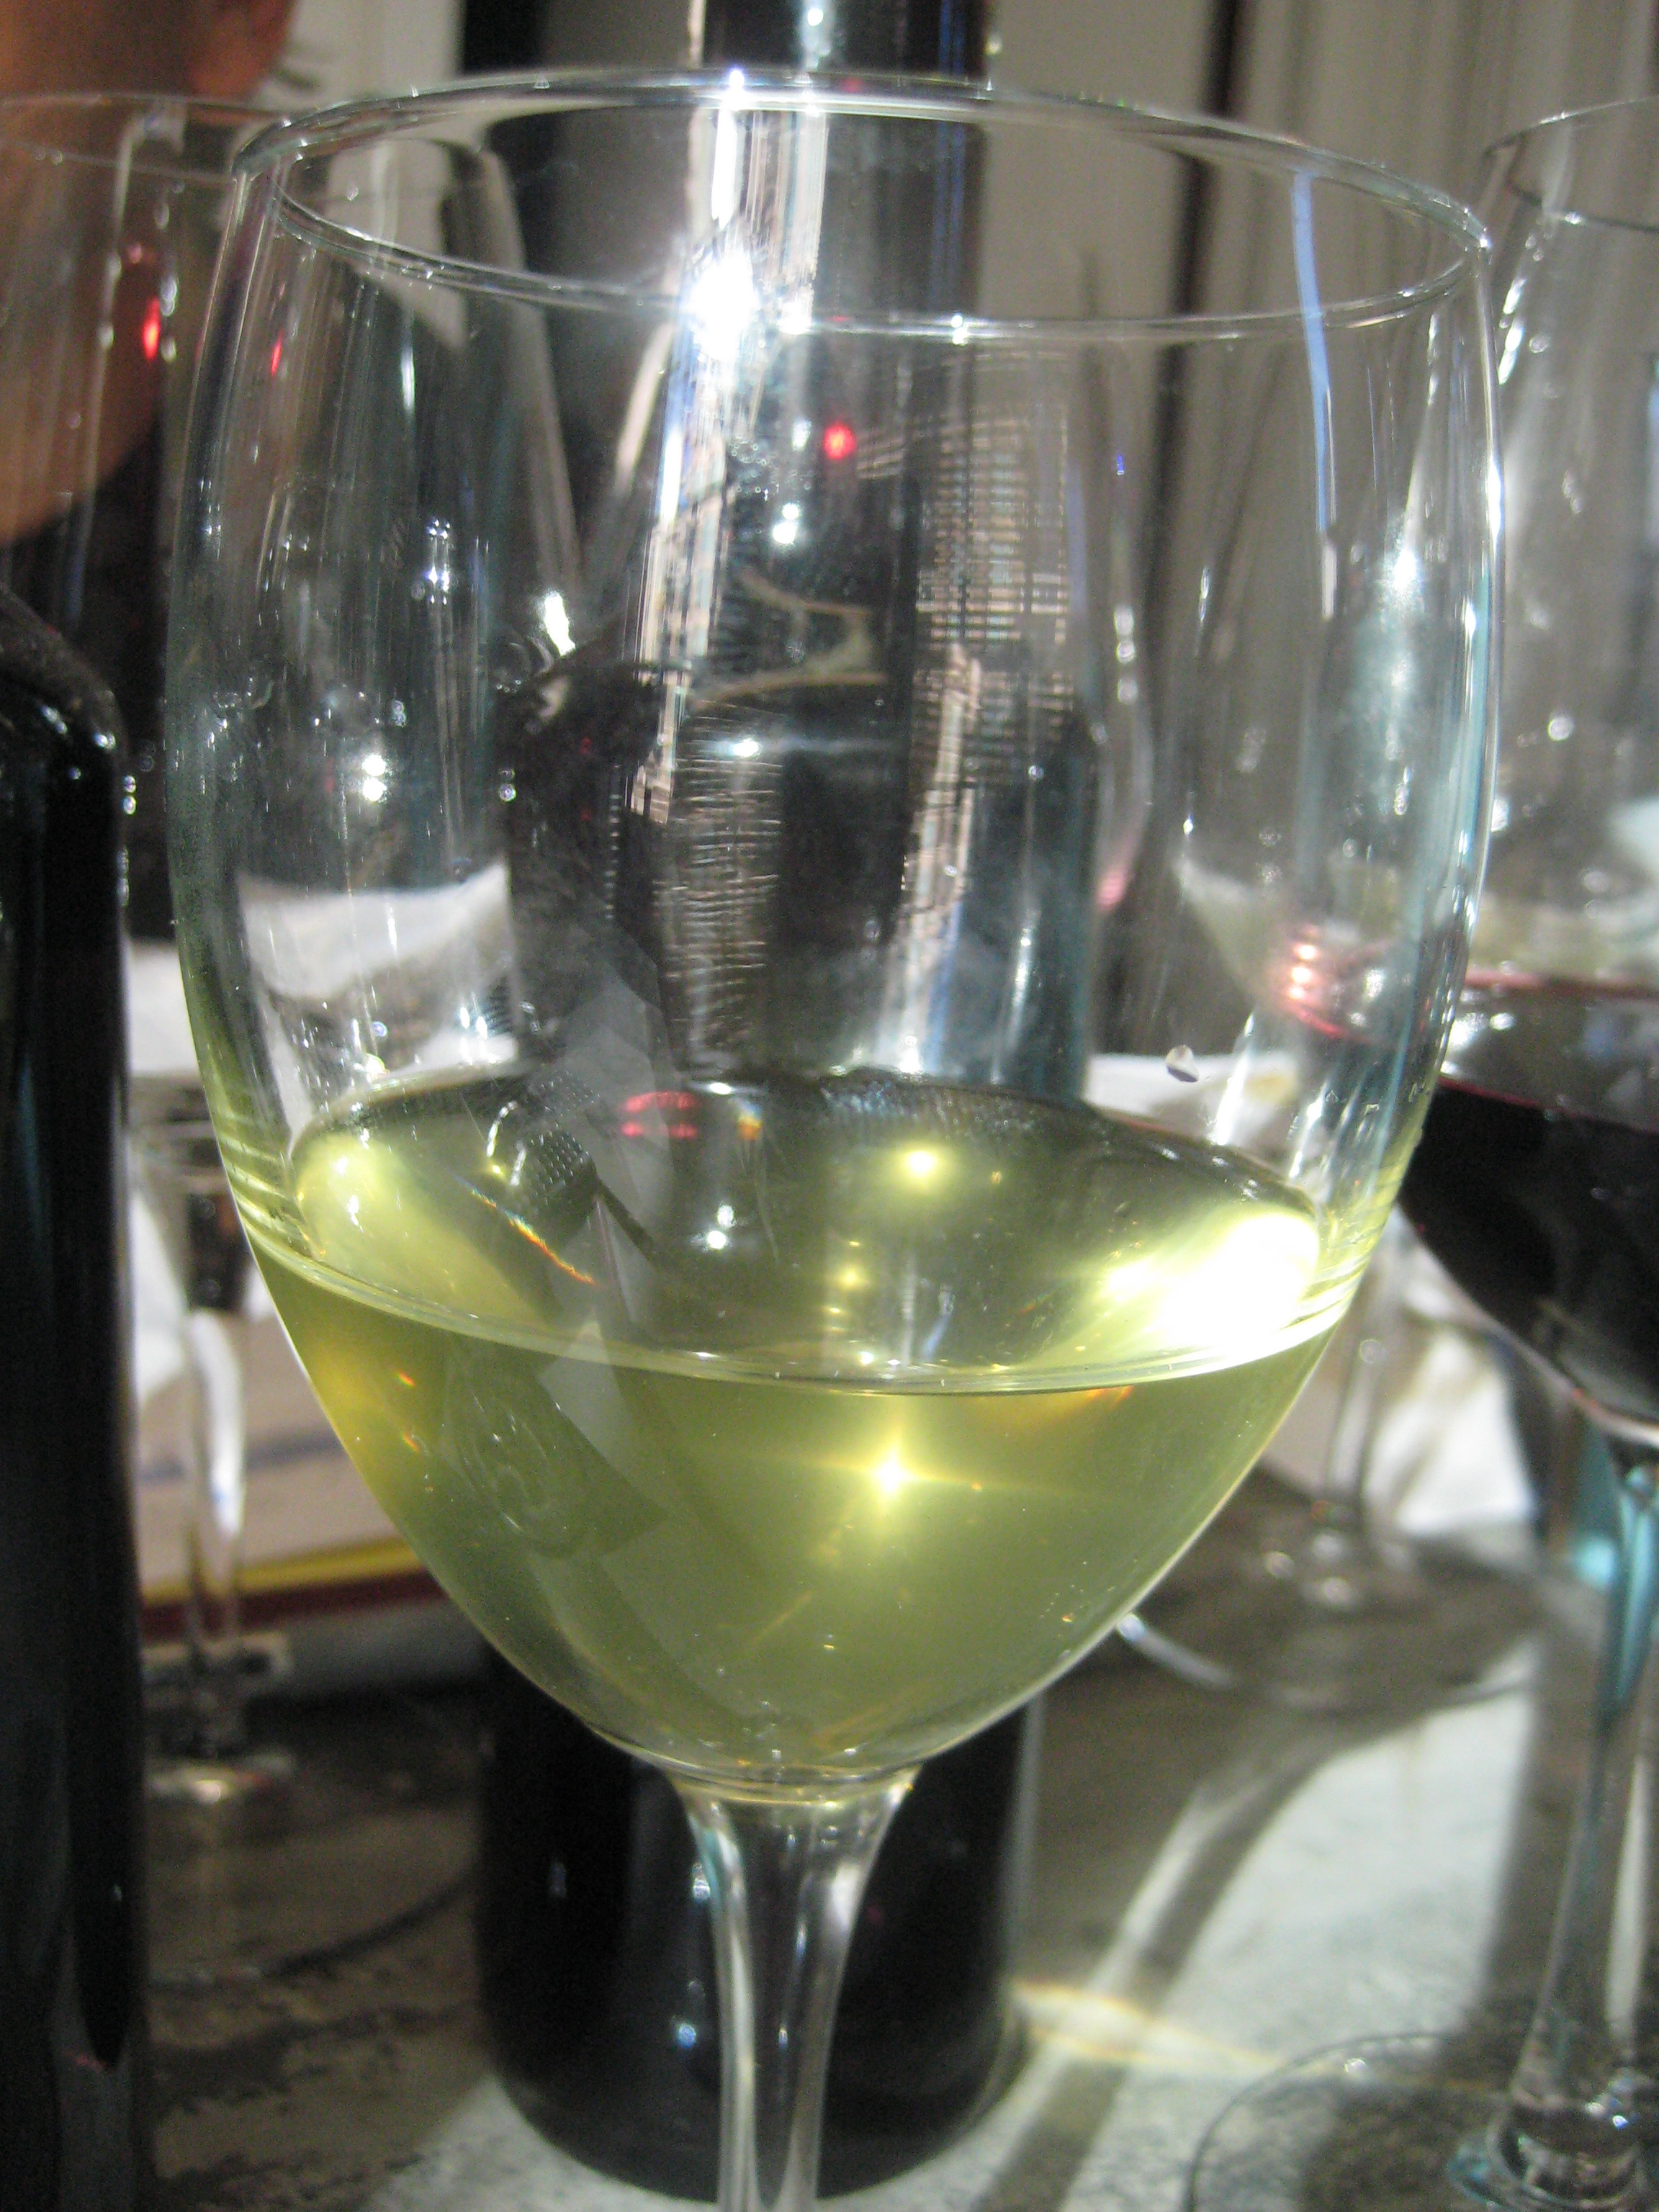 The unfinished Chardonnay resembles extra virgin olive oil.